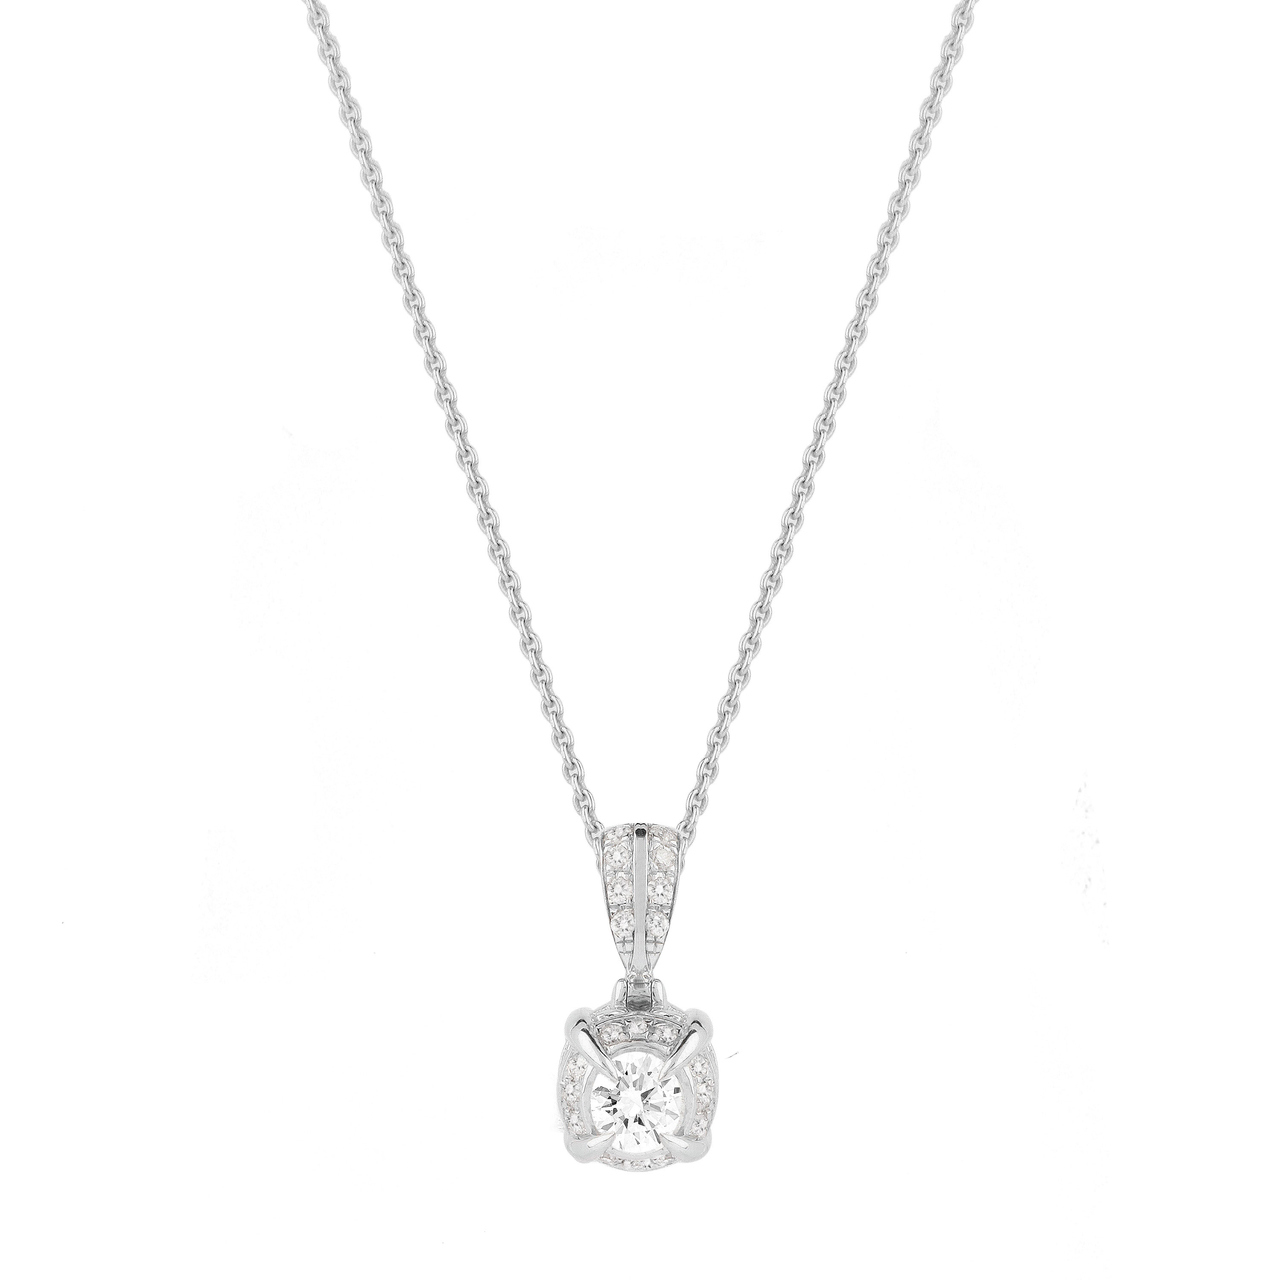 white pendant mogul at round diamond pdp gold buymogul solitaire necklace johnlewis brilliant main rsp online